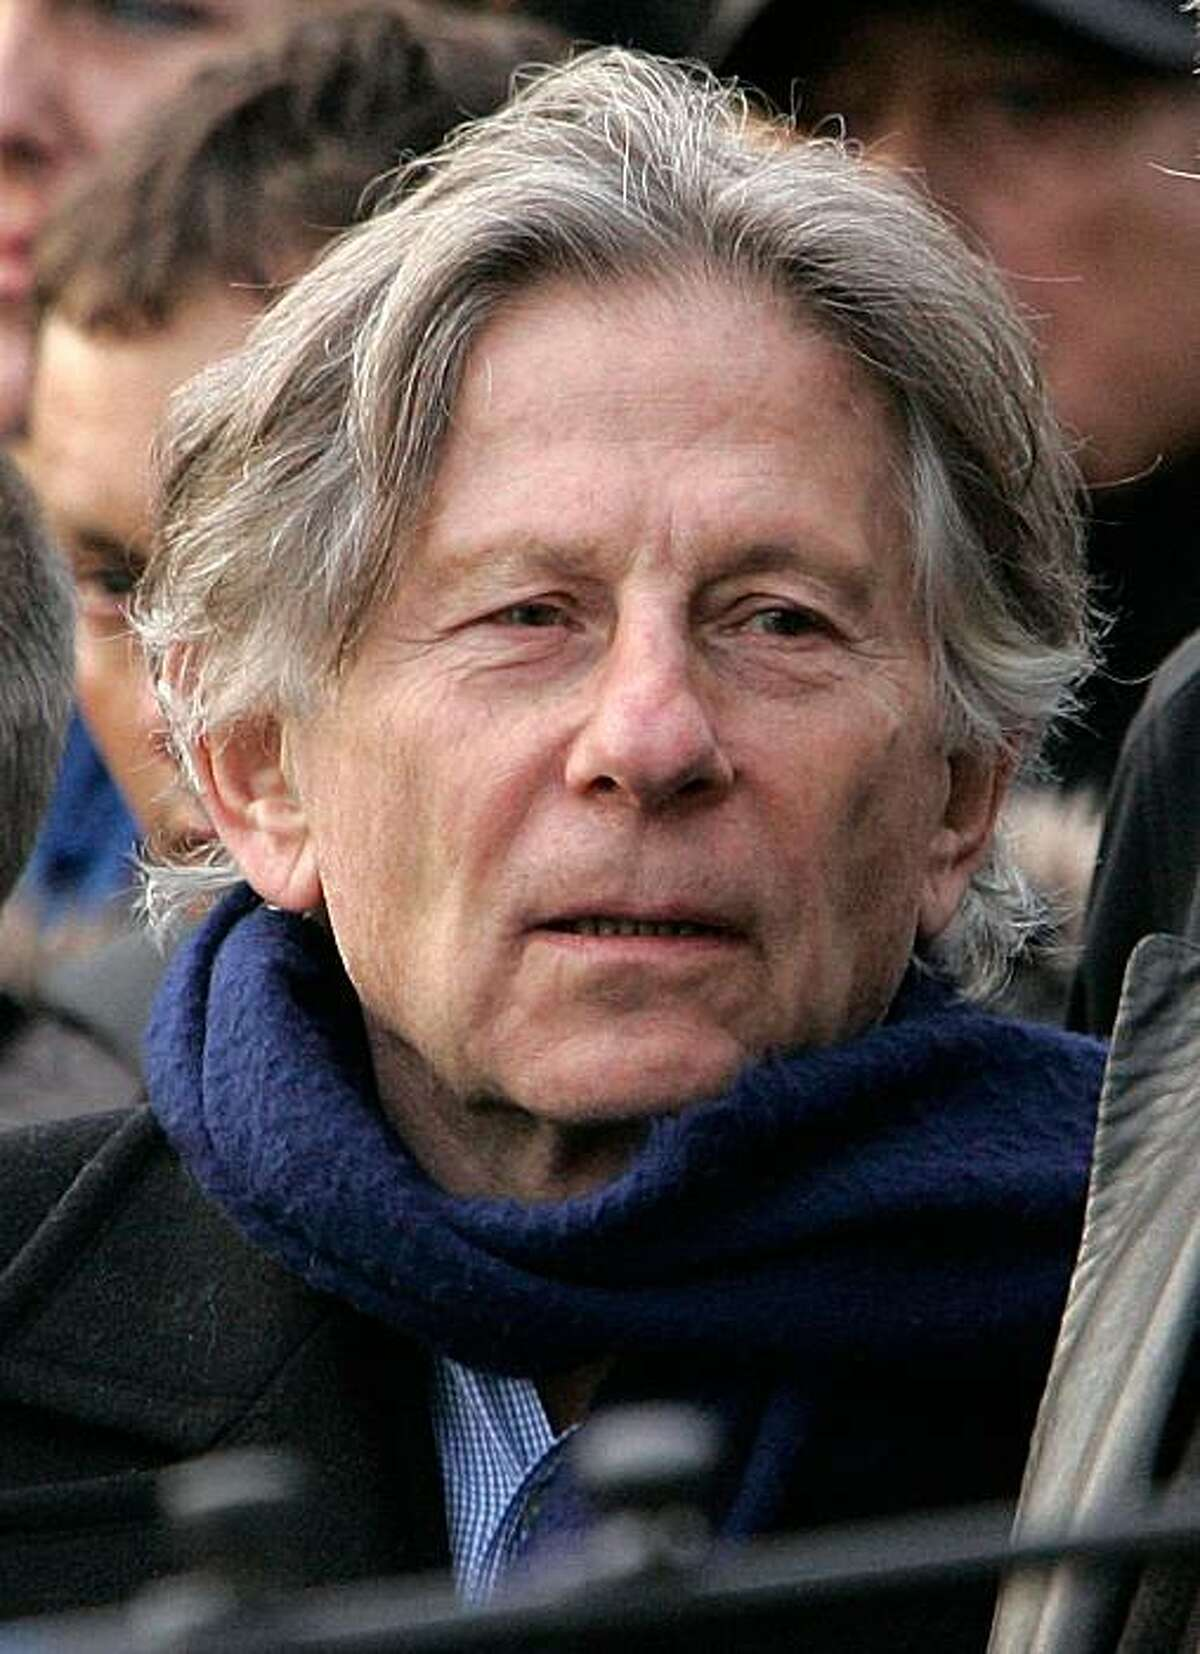 """FILE -- This is a Jan. 15, 2009 file photo, of film director Roman Polanski in Montrouge, France. Polanski won't be extradited to the United States until Los Angeles courts rule definitively that he must face further sentencing in person in a 32-year-oldsex case, a senior Swiss official said Friday Feb. 12, 2010. In a new twist to the long-running saga, the Swiss Justice Ministry's deputy director said that it would make """"no sense"""" to remove the director from house arrest at his Alpine chalet while heseeks to resolve his U.S. case in absentia for having sex in 1977 with a 13-year-old girl."""